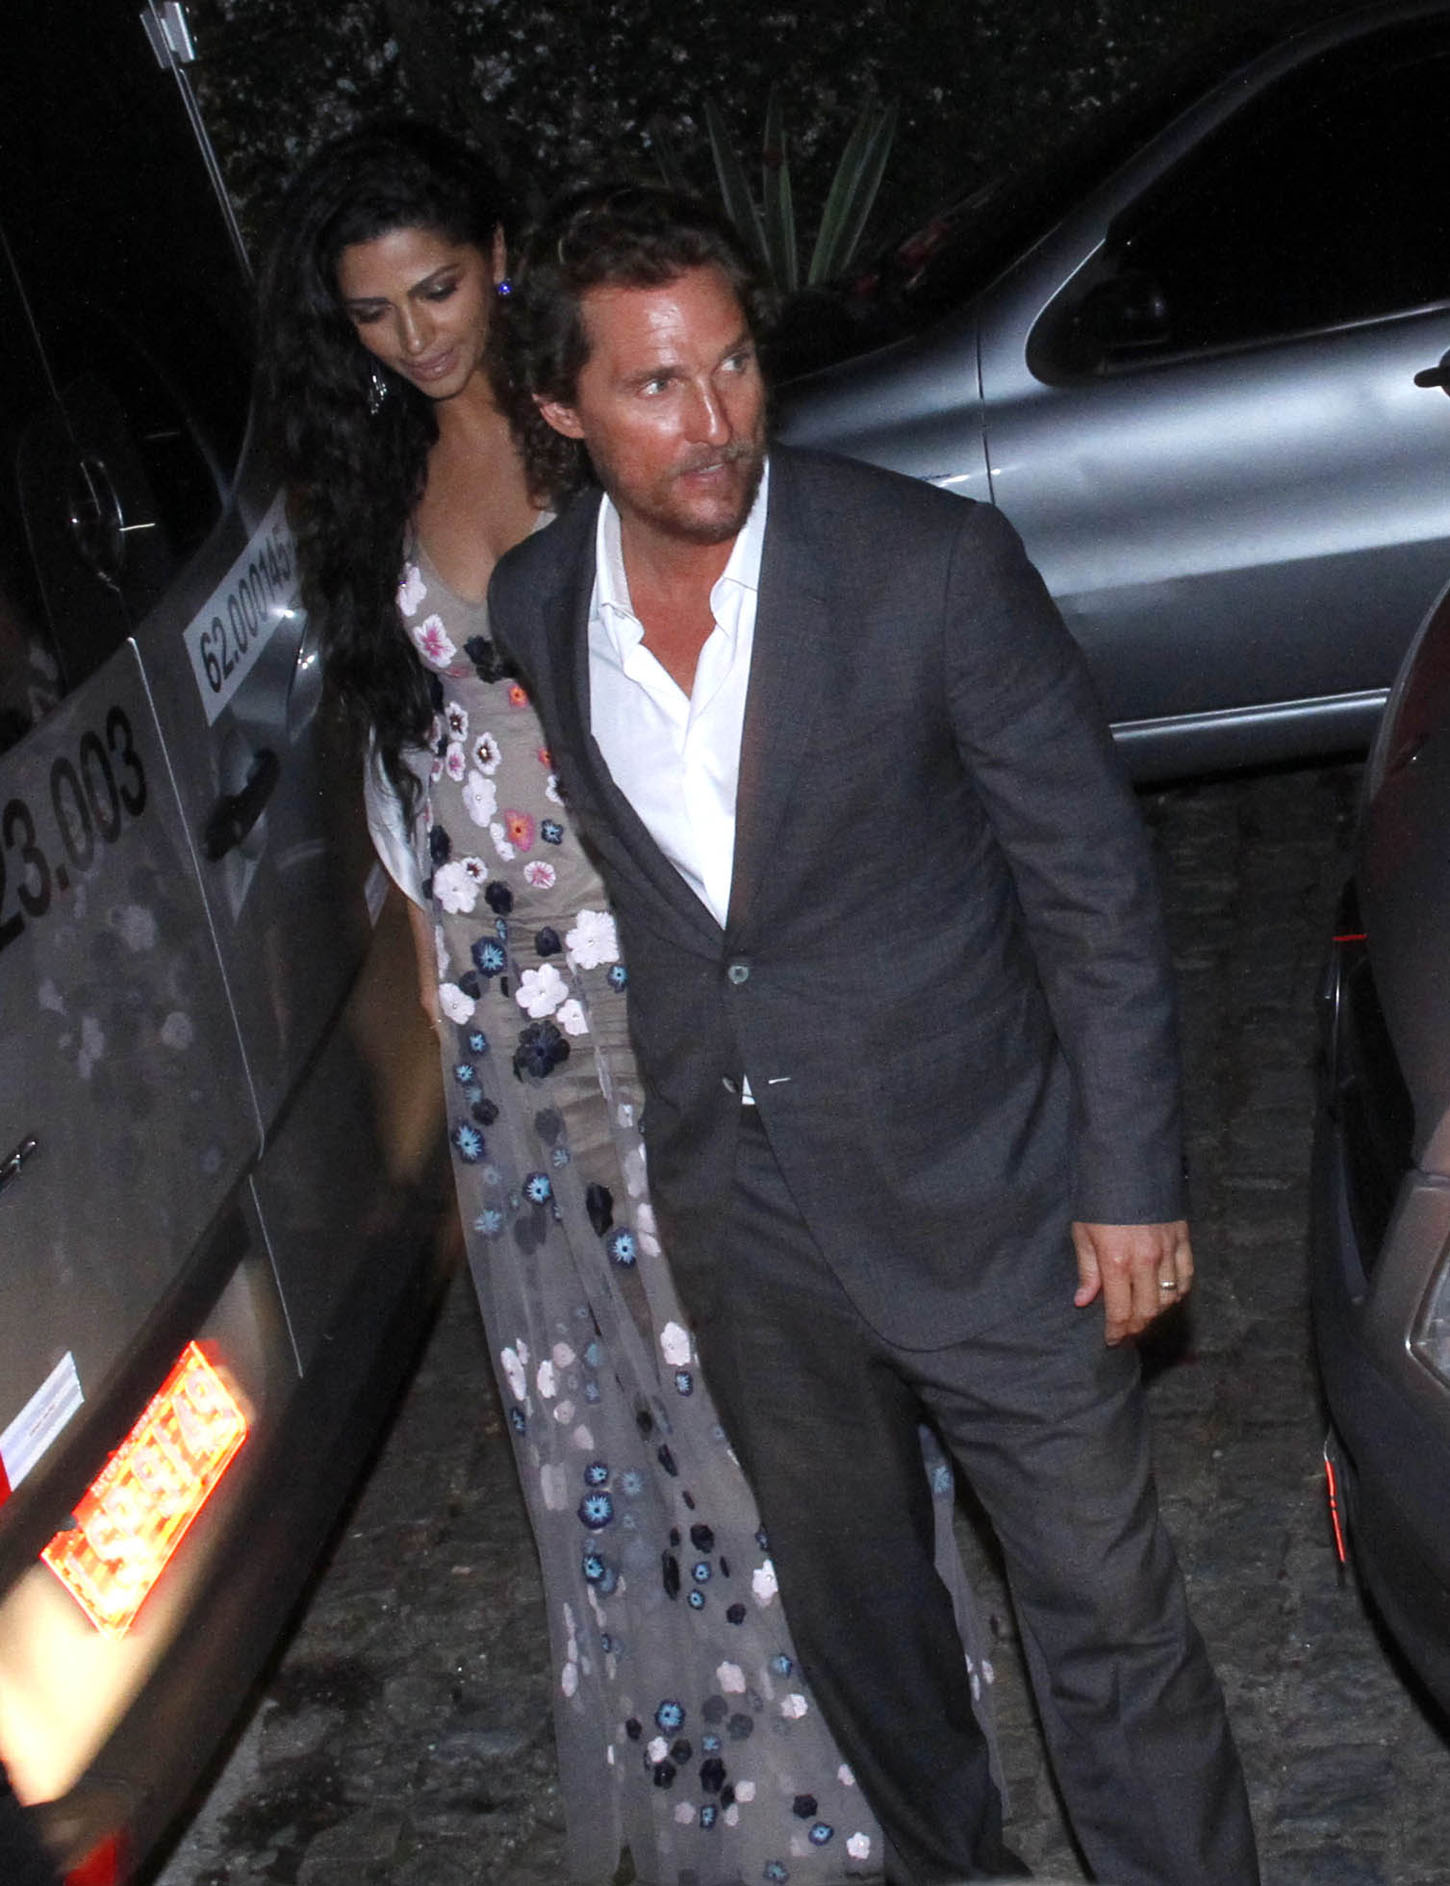 The Oscar-winning actor looked sharp in a grey suit and shirtless tie, with wife Camila shining in a long floral dress as they arrived at the after-party for super-manager Guy Oseary's vow renewals with Brazilian model wife Michelle Alves. A host of A-list celebrities have descended on Rio de Janeiro for the 0,000 bash, including Madonna, U2 and Red Hot Chili Peppers band members, Chris Rock, Dakota Johnson and others.  <P> Pictured: Matthew McConaughey and Camila Alves <B>Ref: SPL1608946  241017  </B><BR/> Picture by: Leo Marinho / Splash News<BR/> </P><P> <B>Splash News and Pictures</B><BR/> Los Angeles:310-821-2666<BR/> New York:212-619-2666<BR/> London:870-934-2666<BR/> <span id=